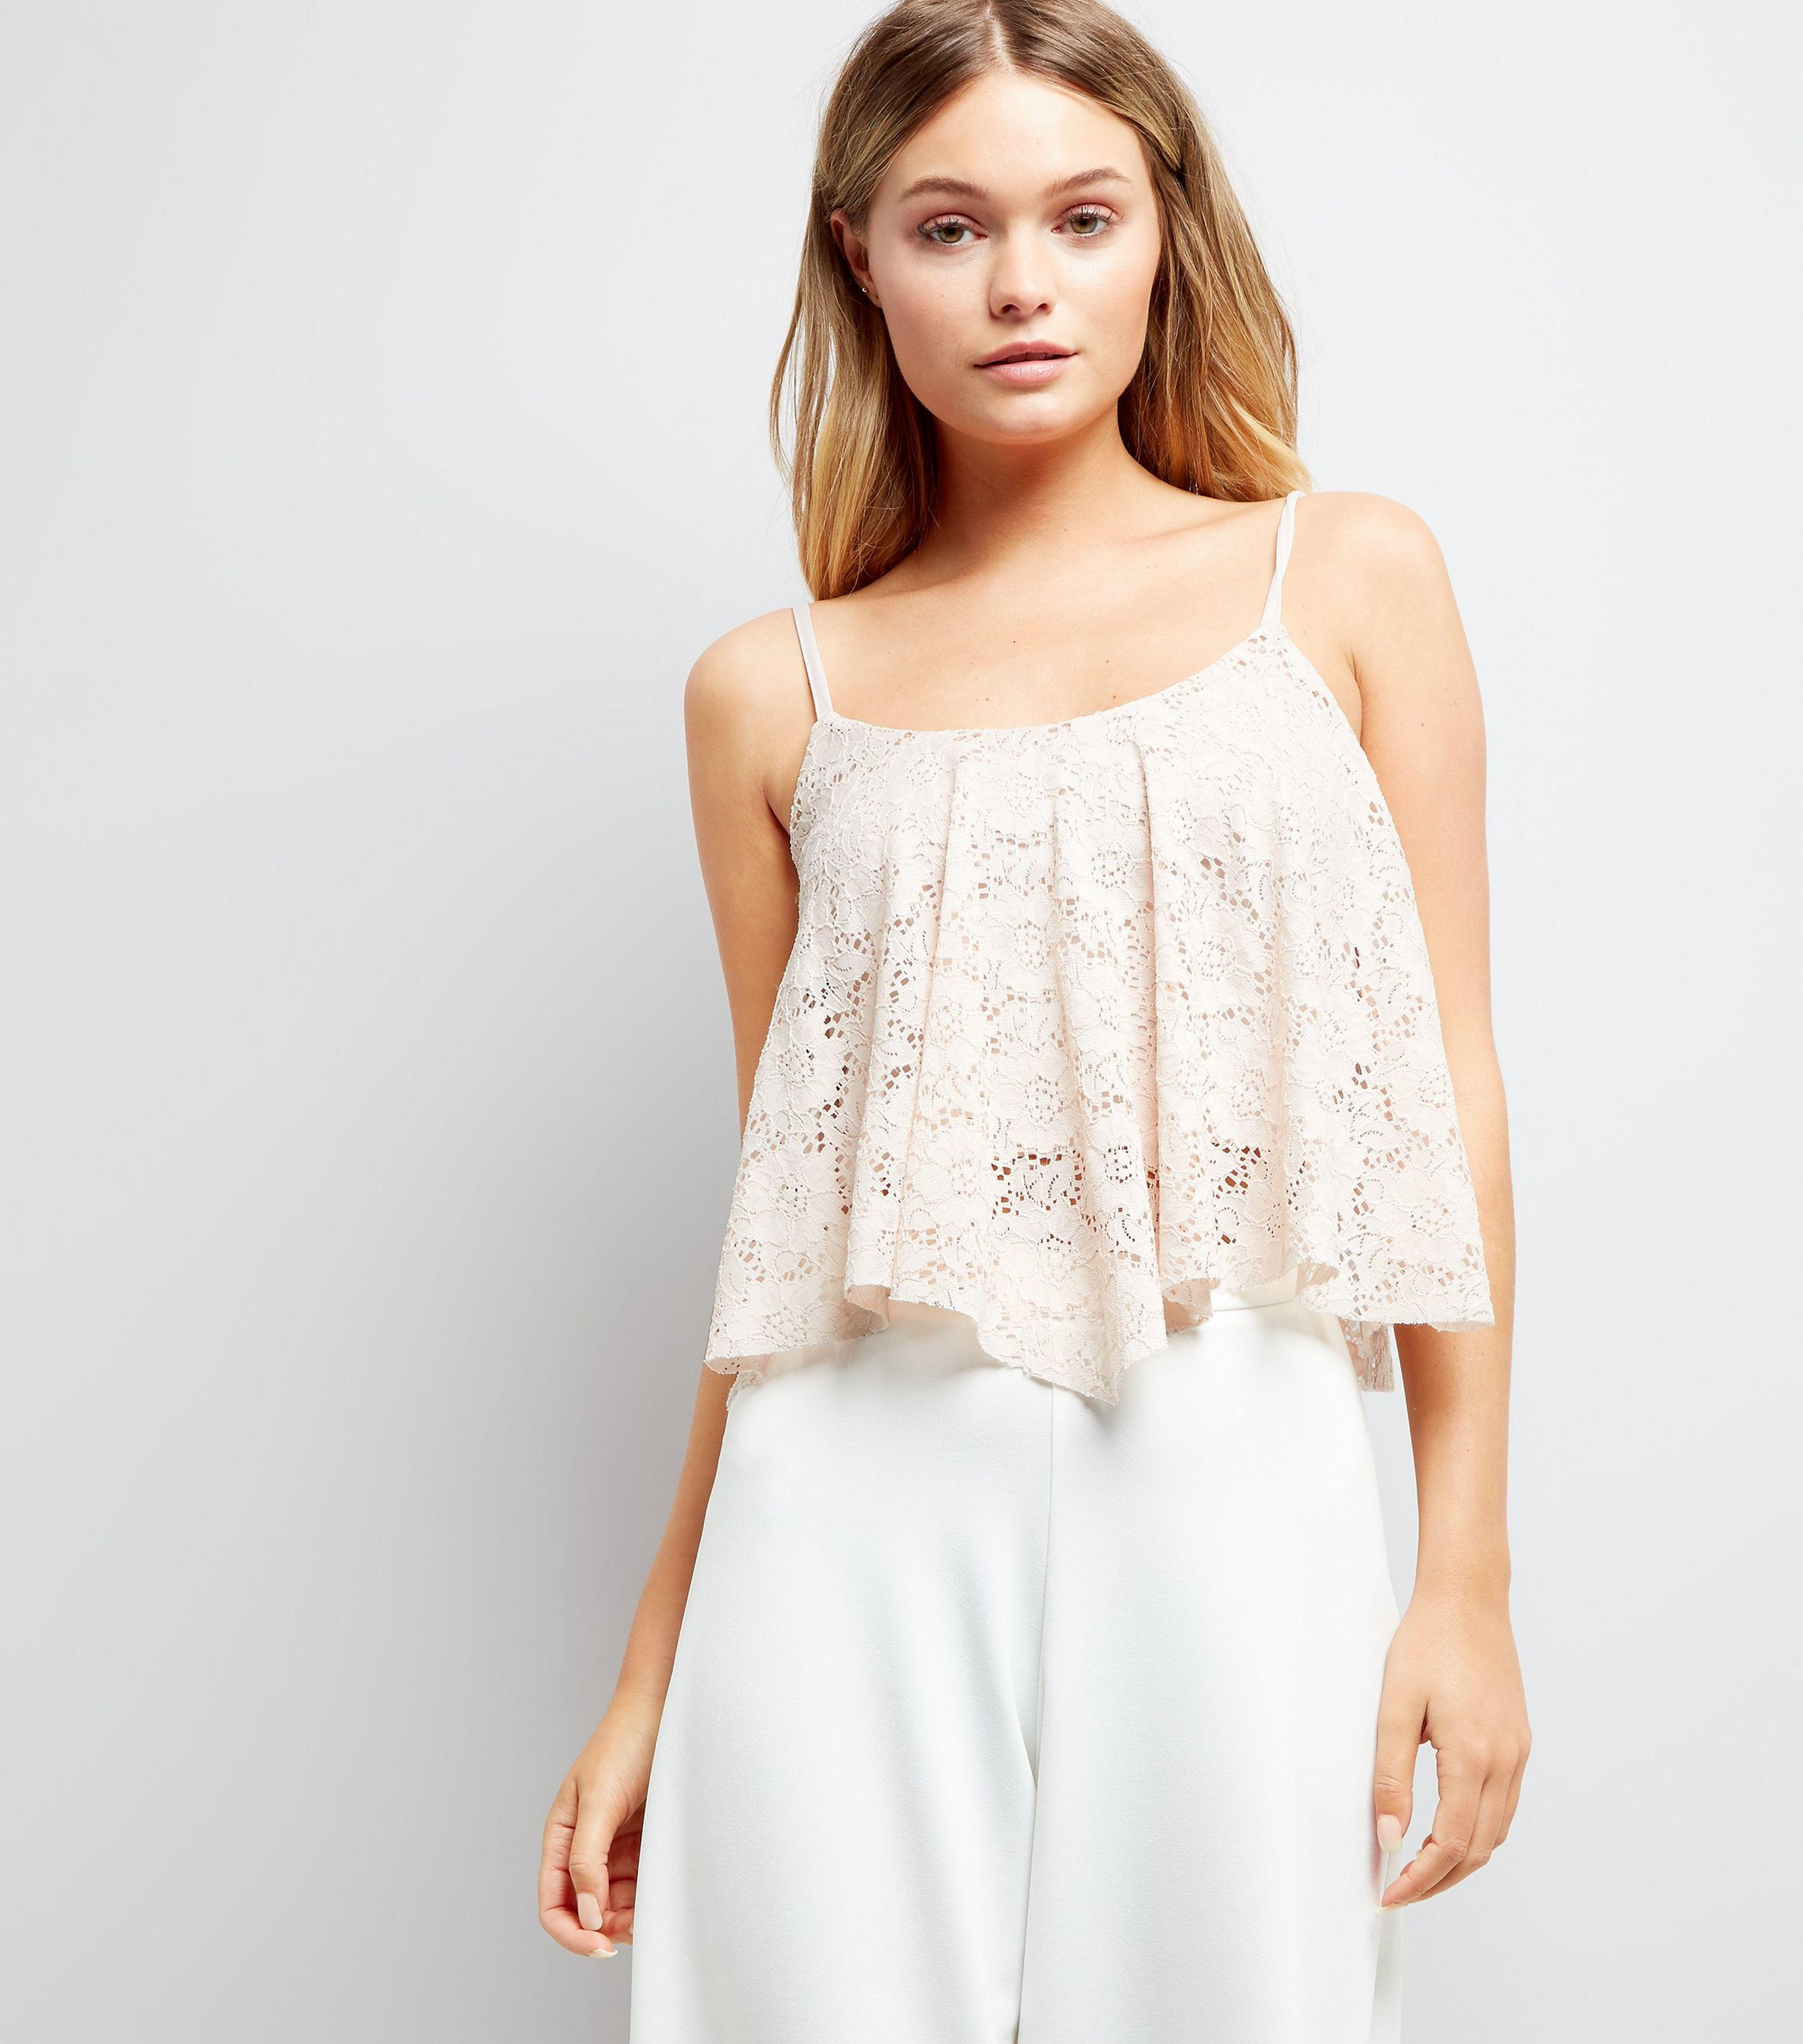 9a75a1921554dc New Look Shell Pink Lace Hanky Hem Crop Top in Pink - Lyst